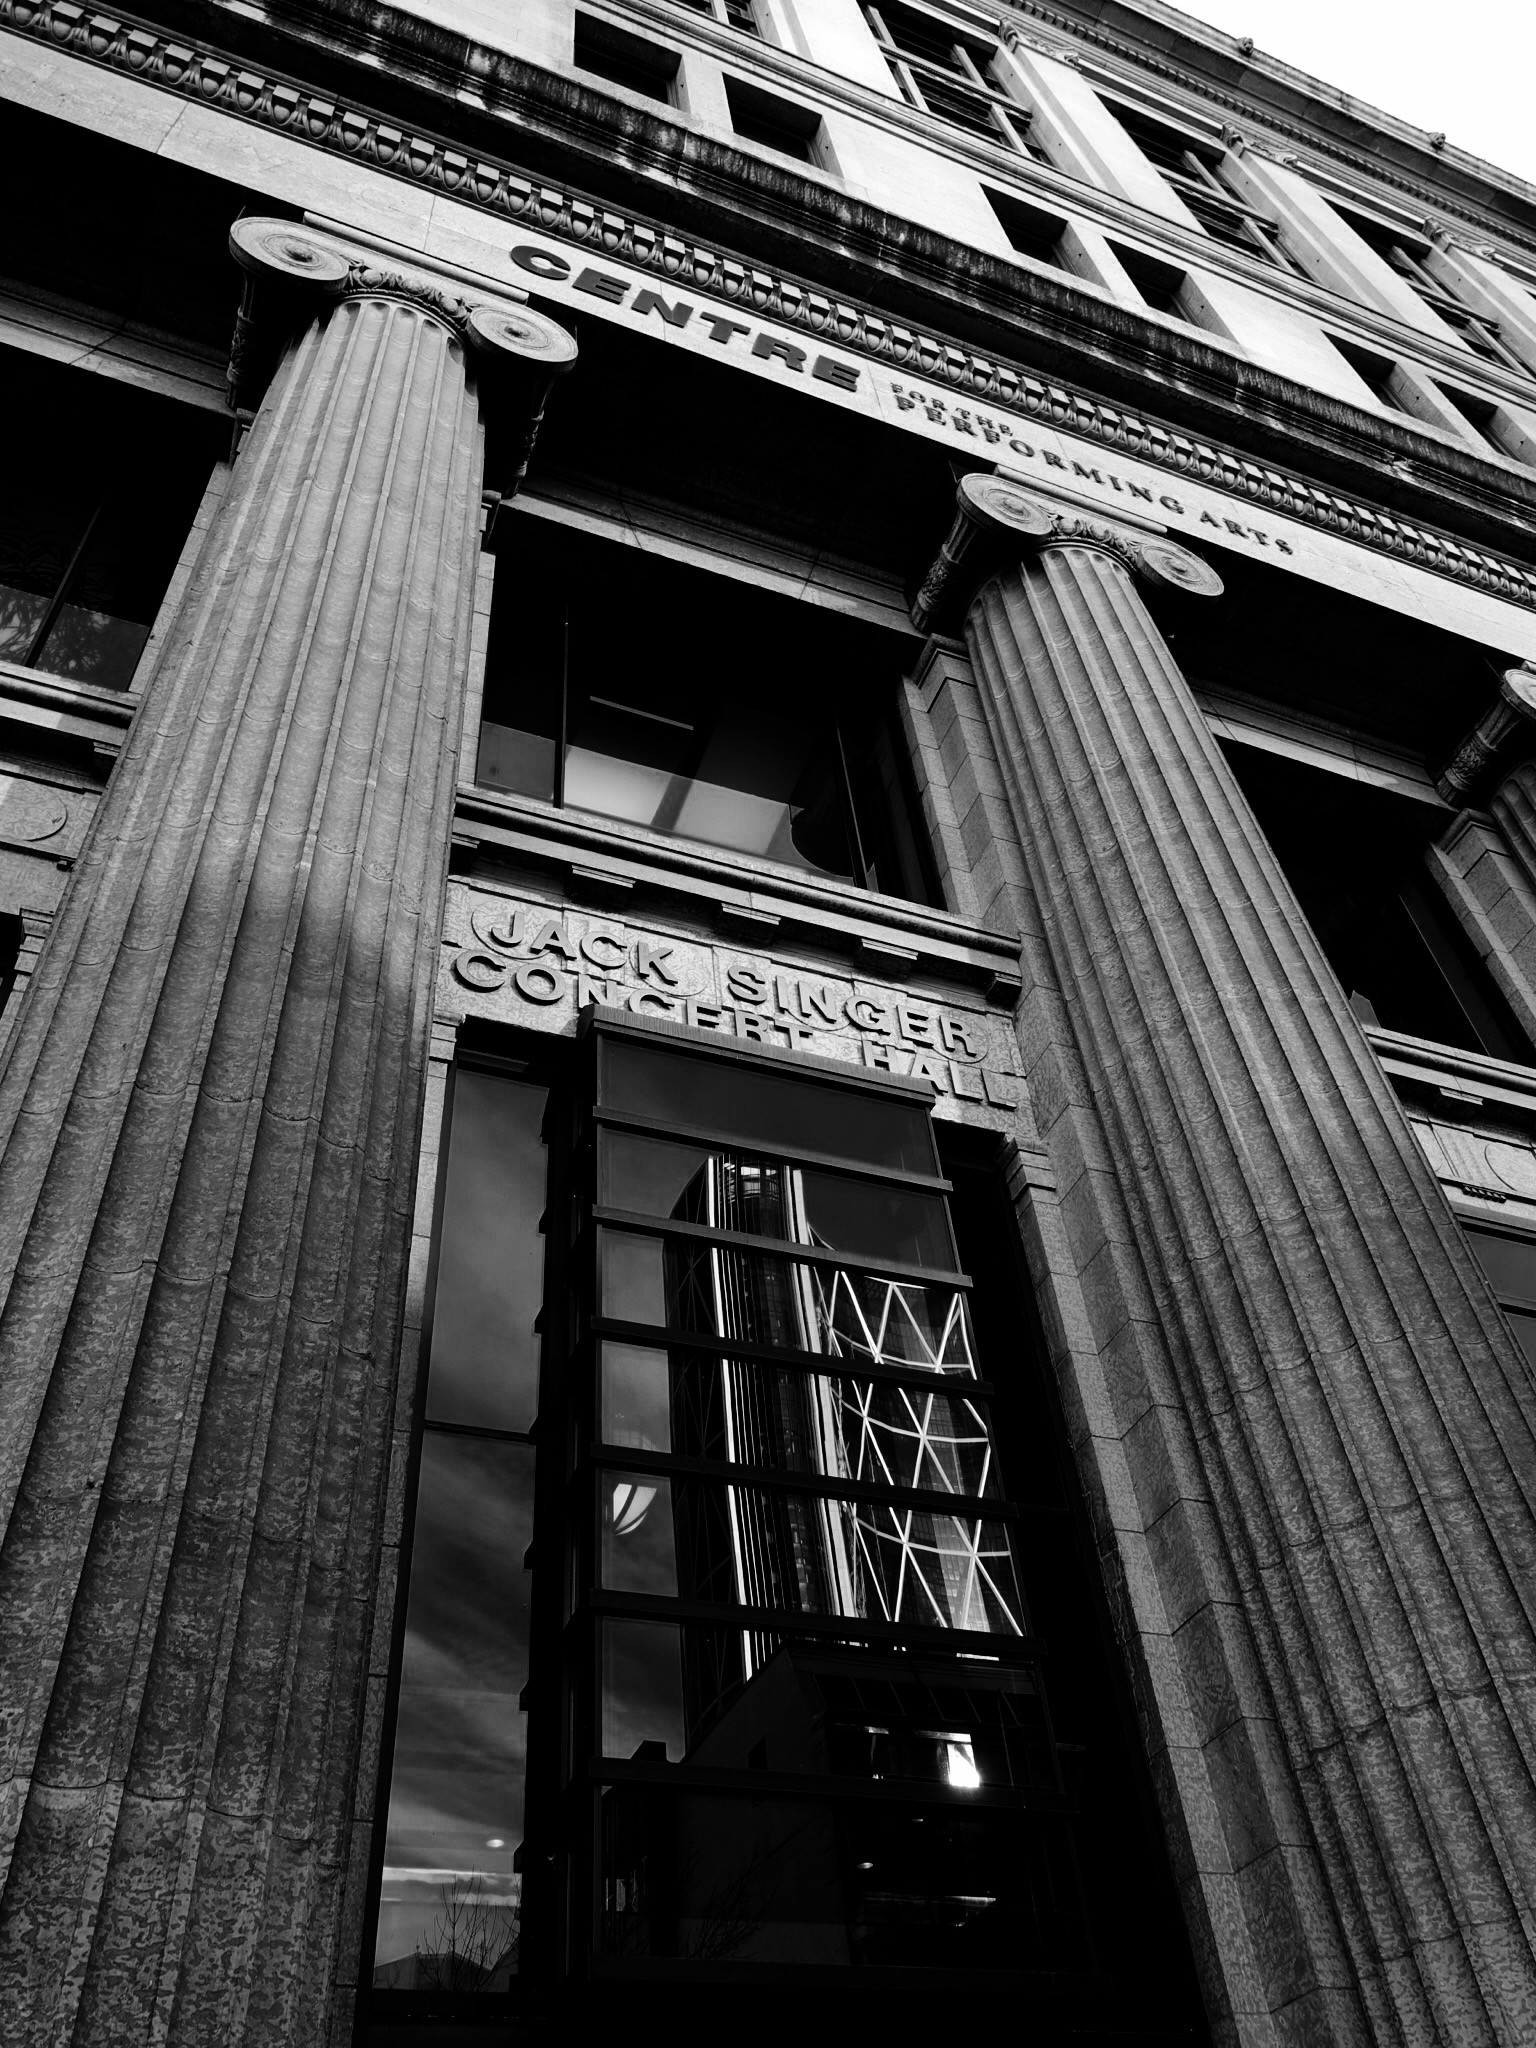 The juxtaposition of the Bow Tower in the pillars of the historic Public Building was barely visible in the colour images. In b&w the texture and pattern in the columns is revealed.